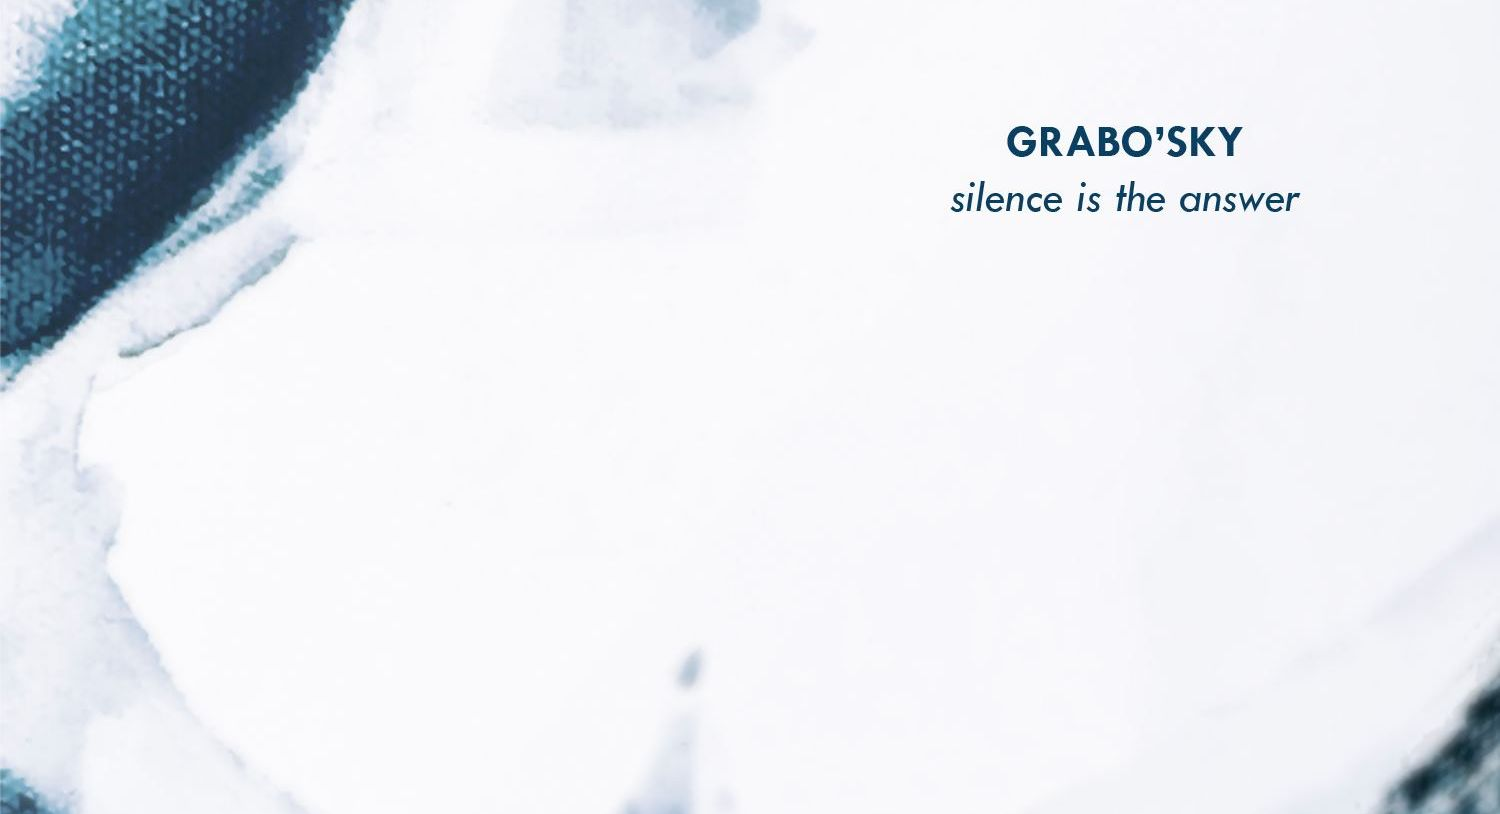 grabo_sky_silence_is_the_answer_borito.jpg